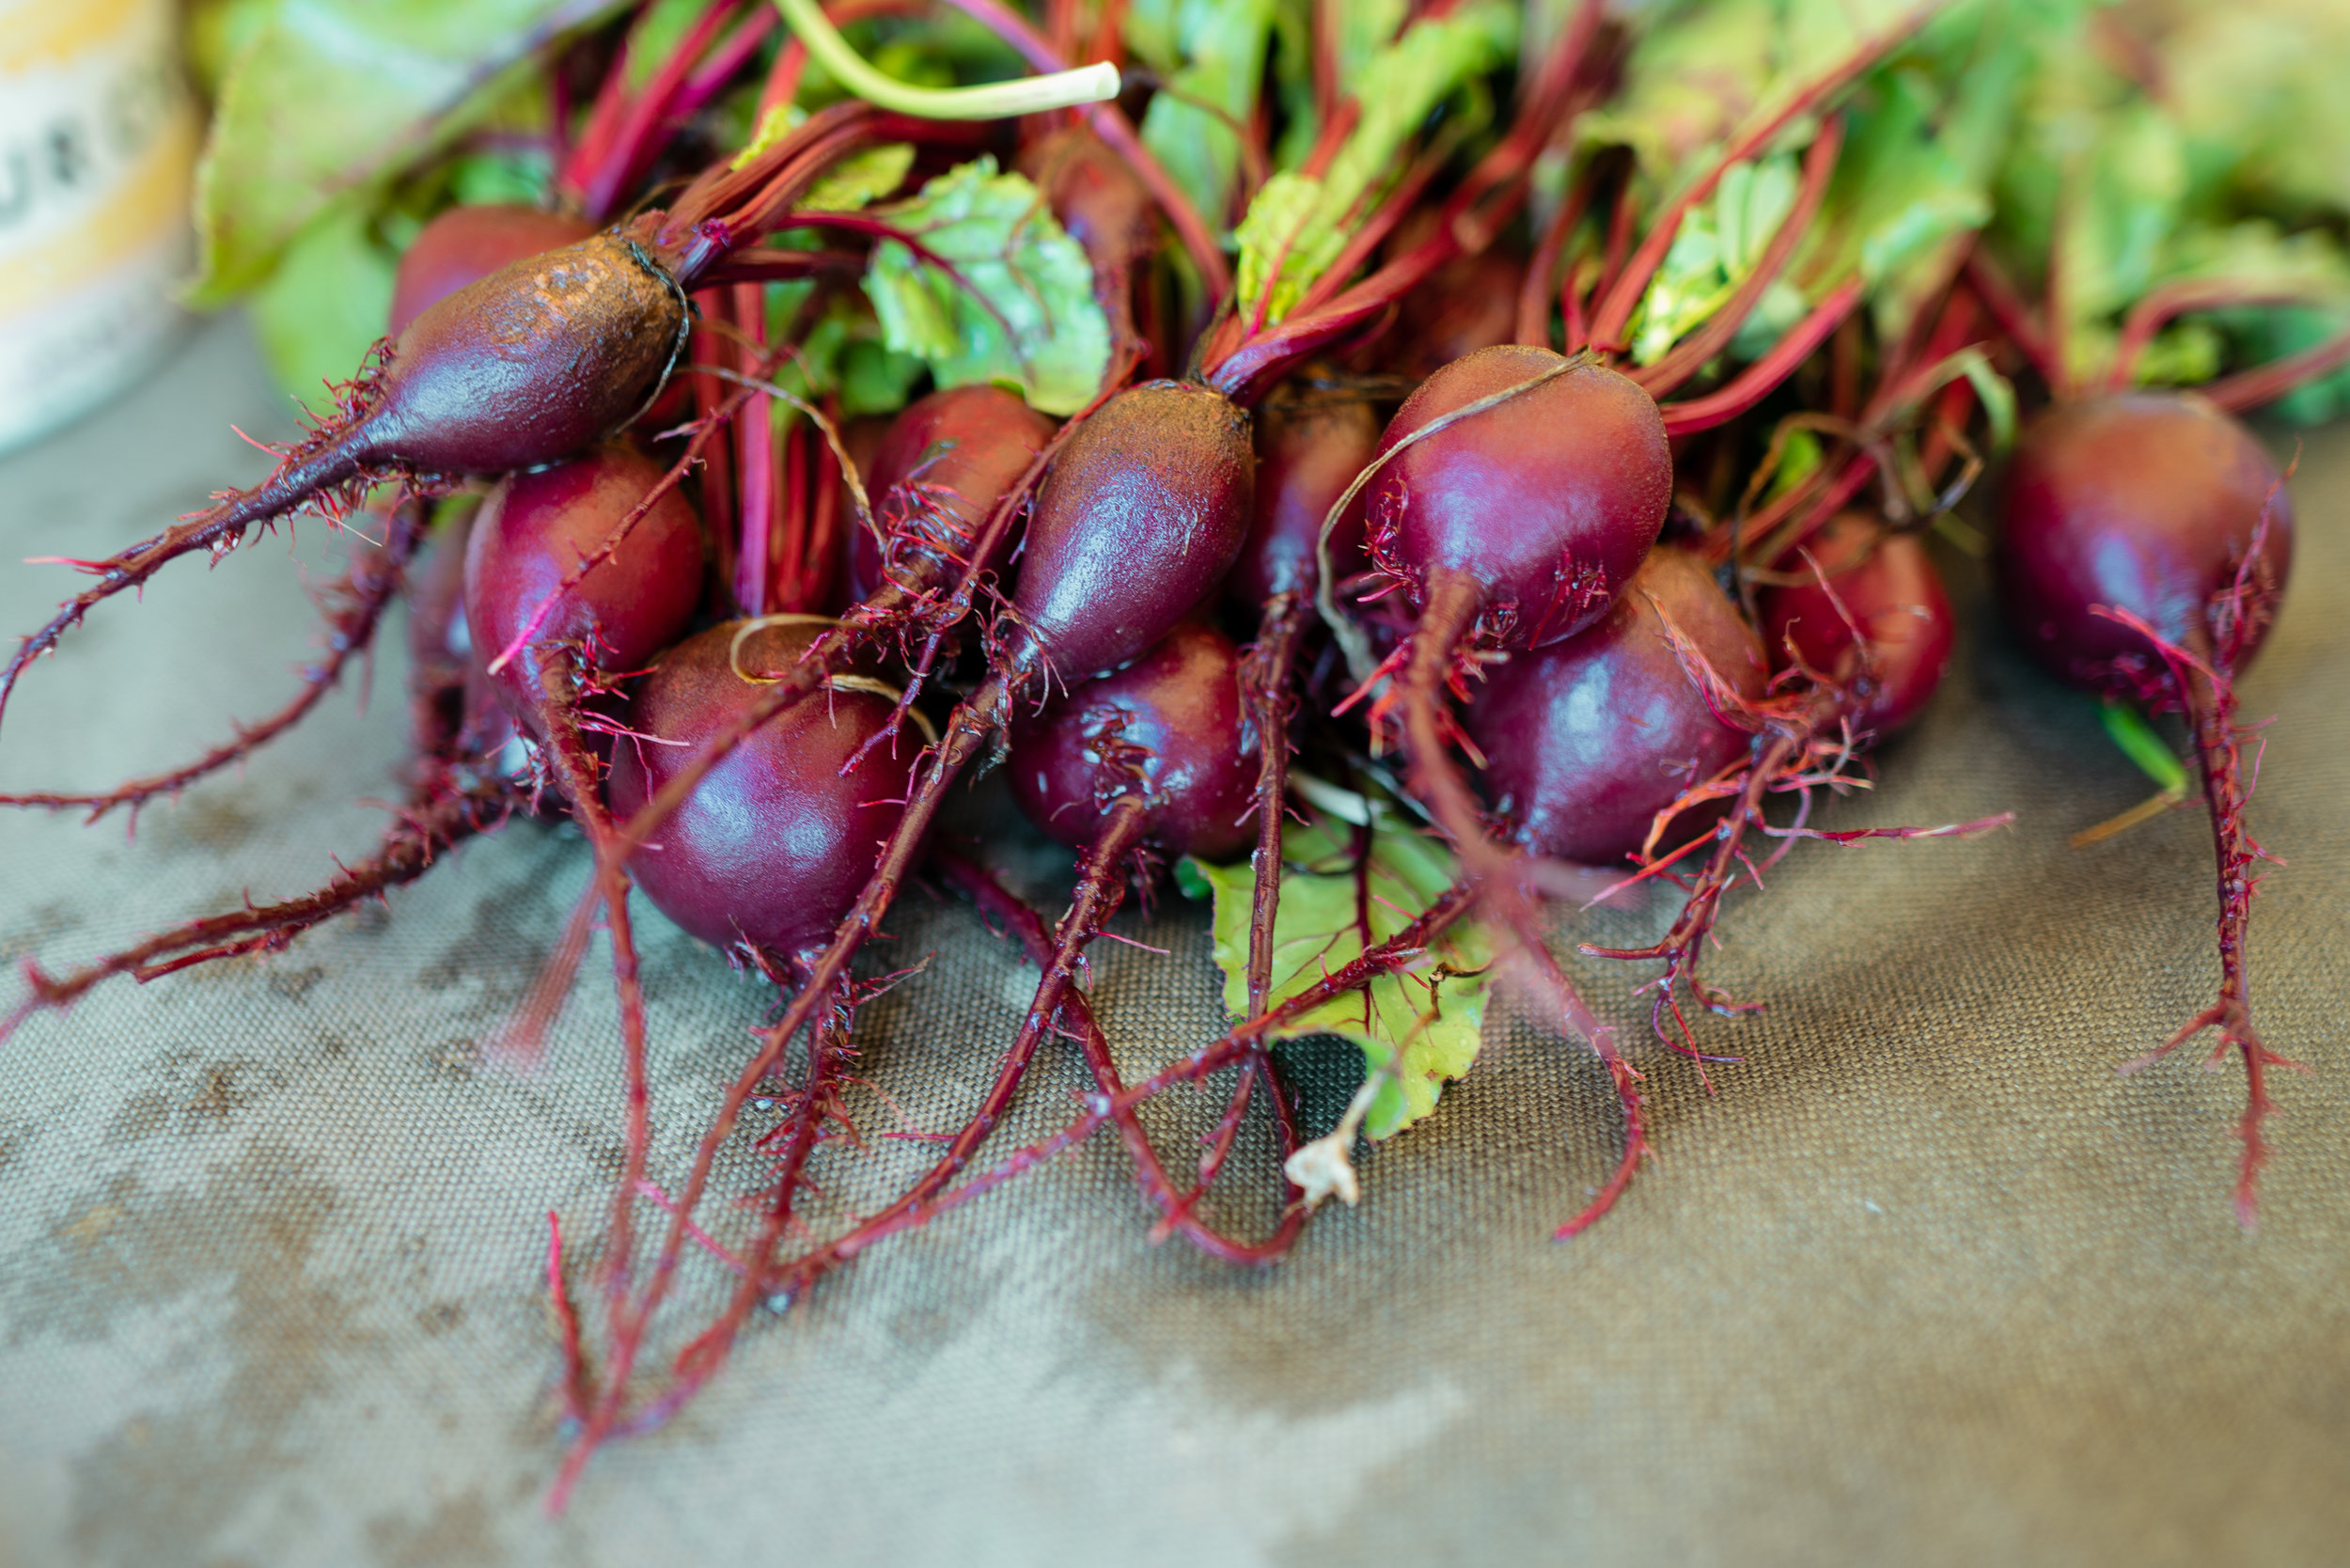 Beets at Sprig & Root Farm in Clarkston, Montana.